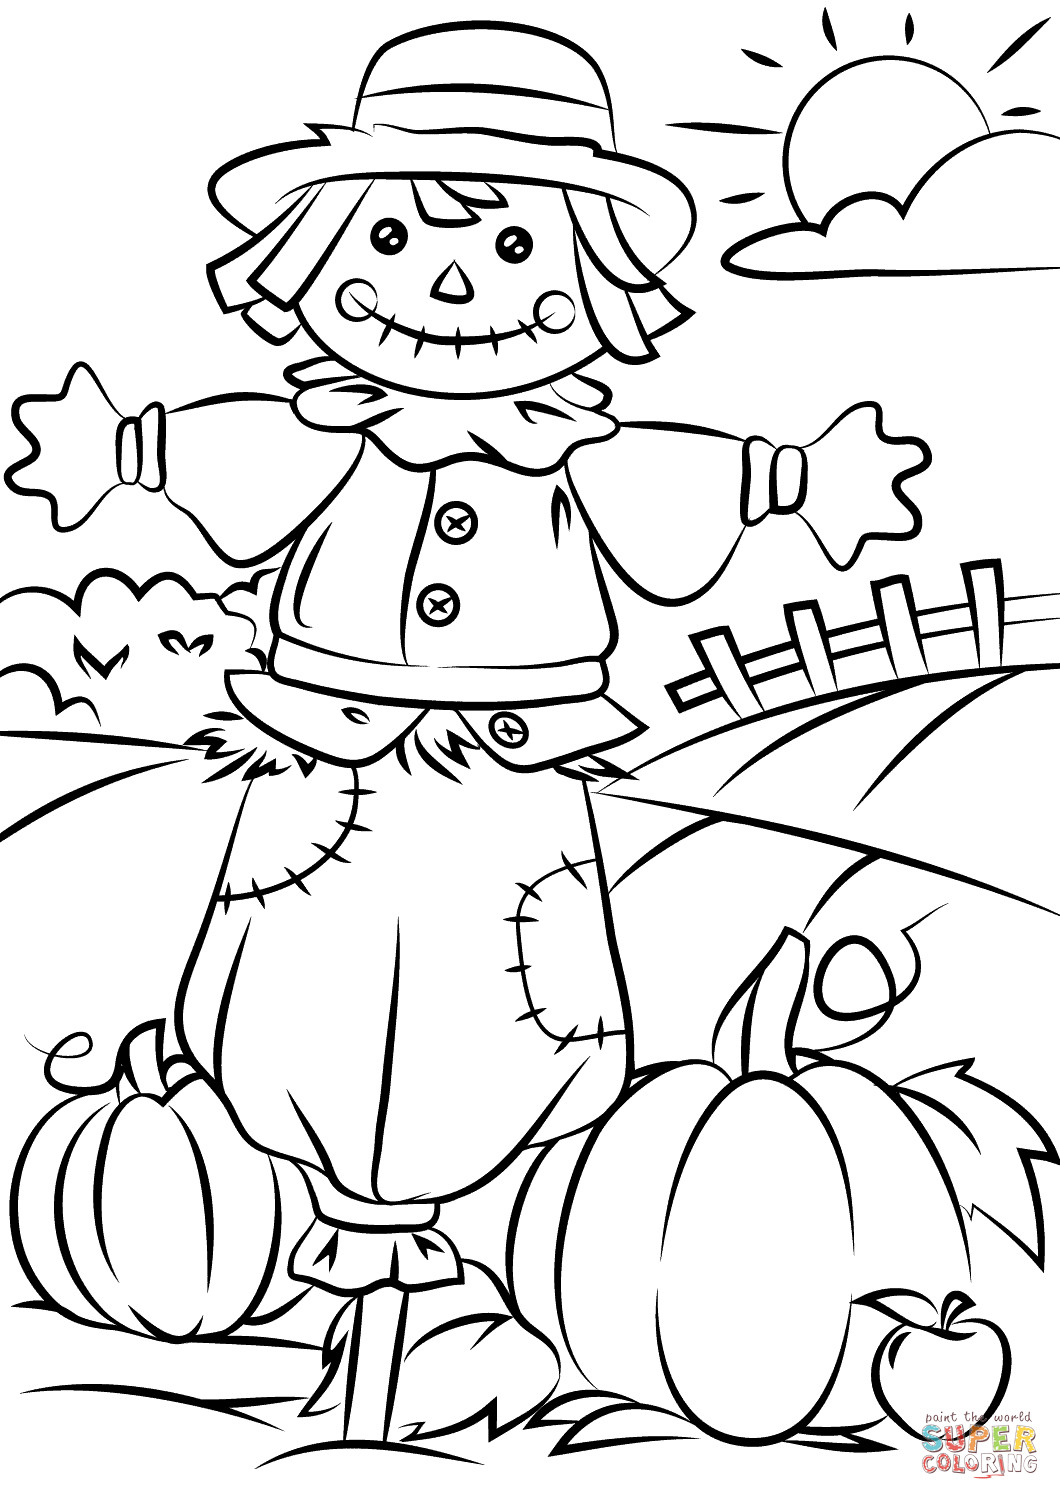 Kids Free Coloring Sheets Fall  Autumn Scene with Scarecrow coloring page